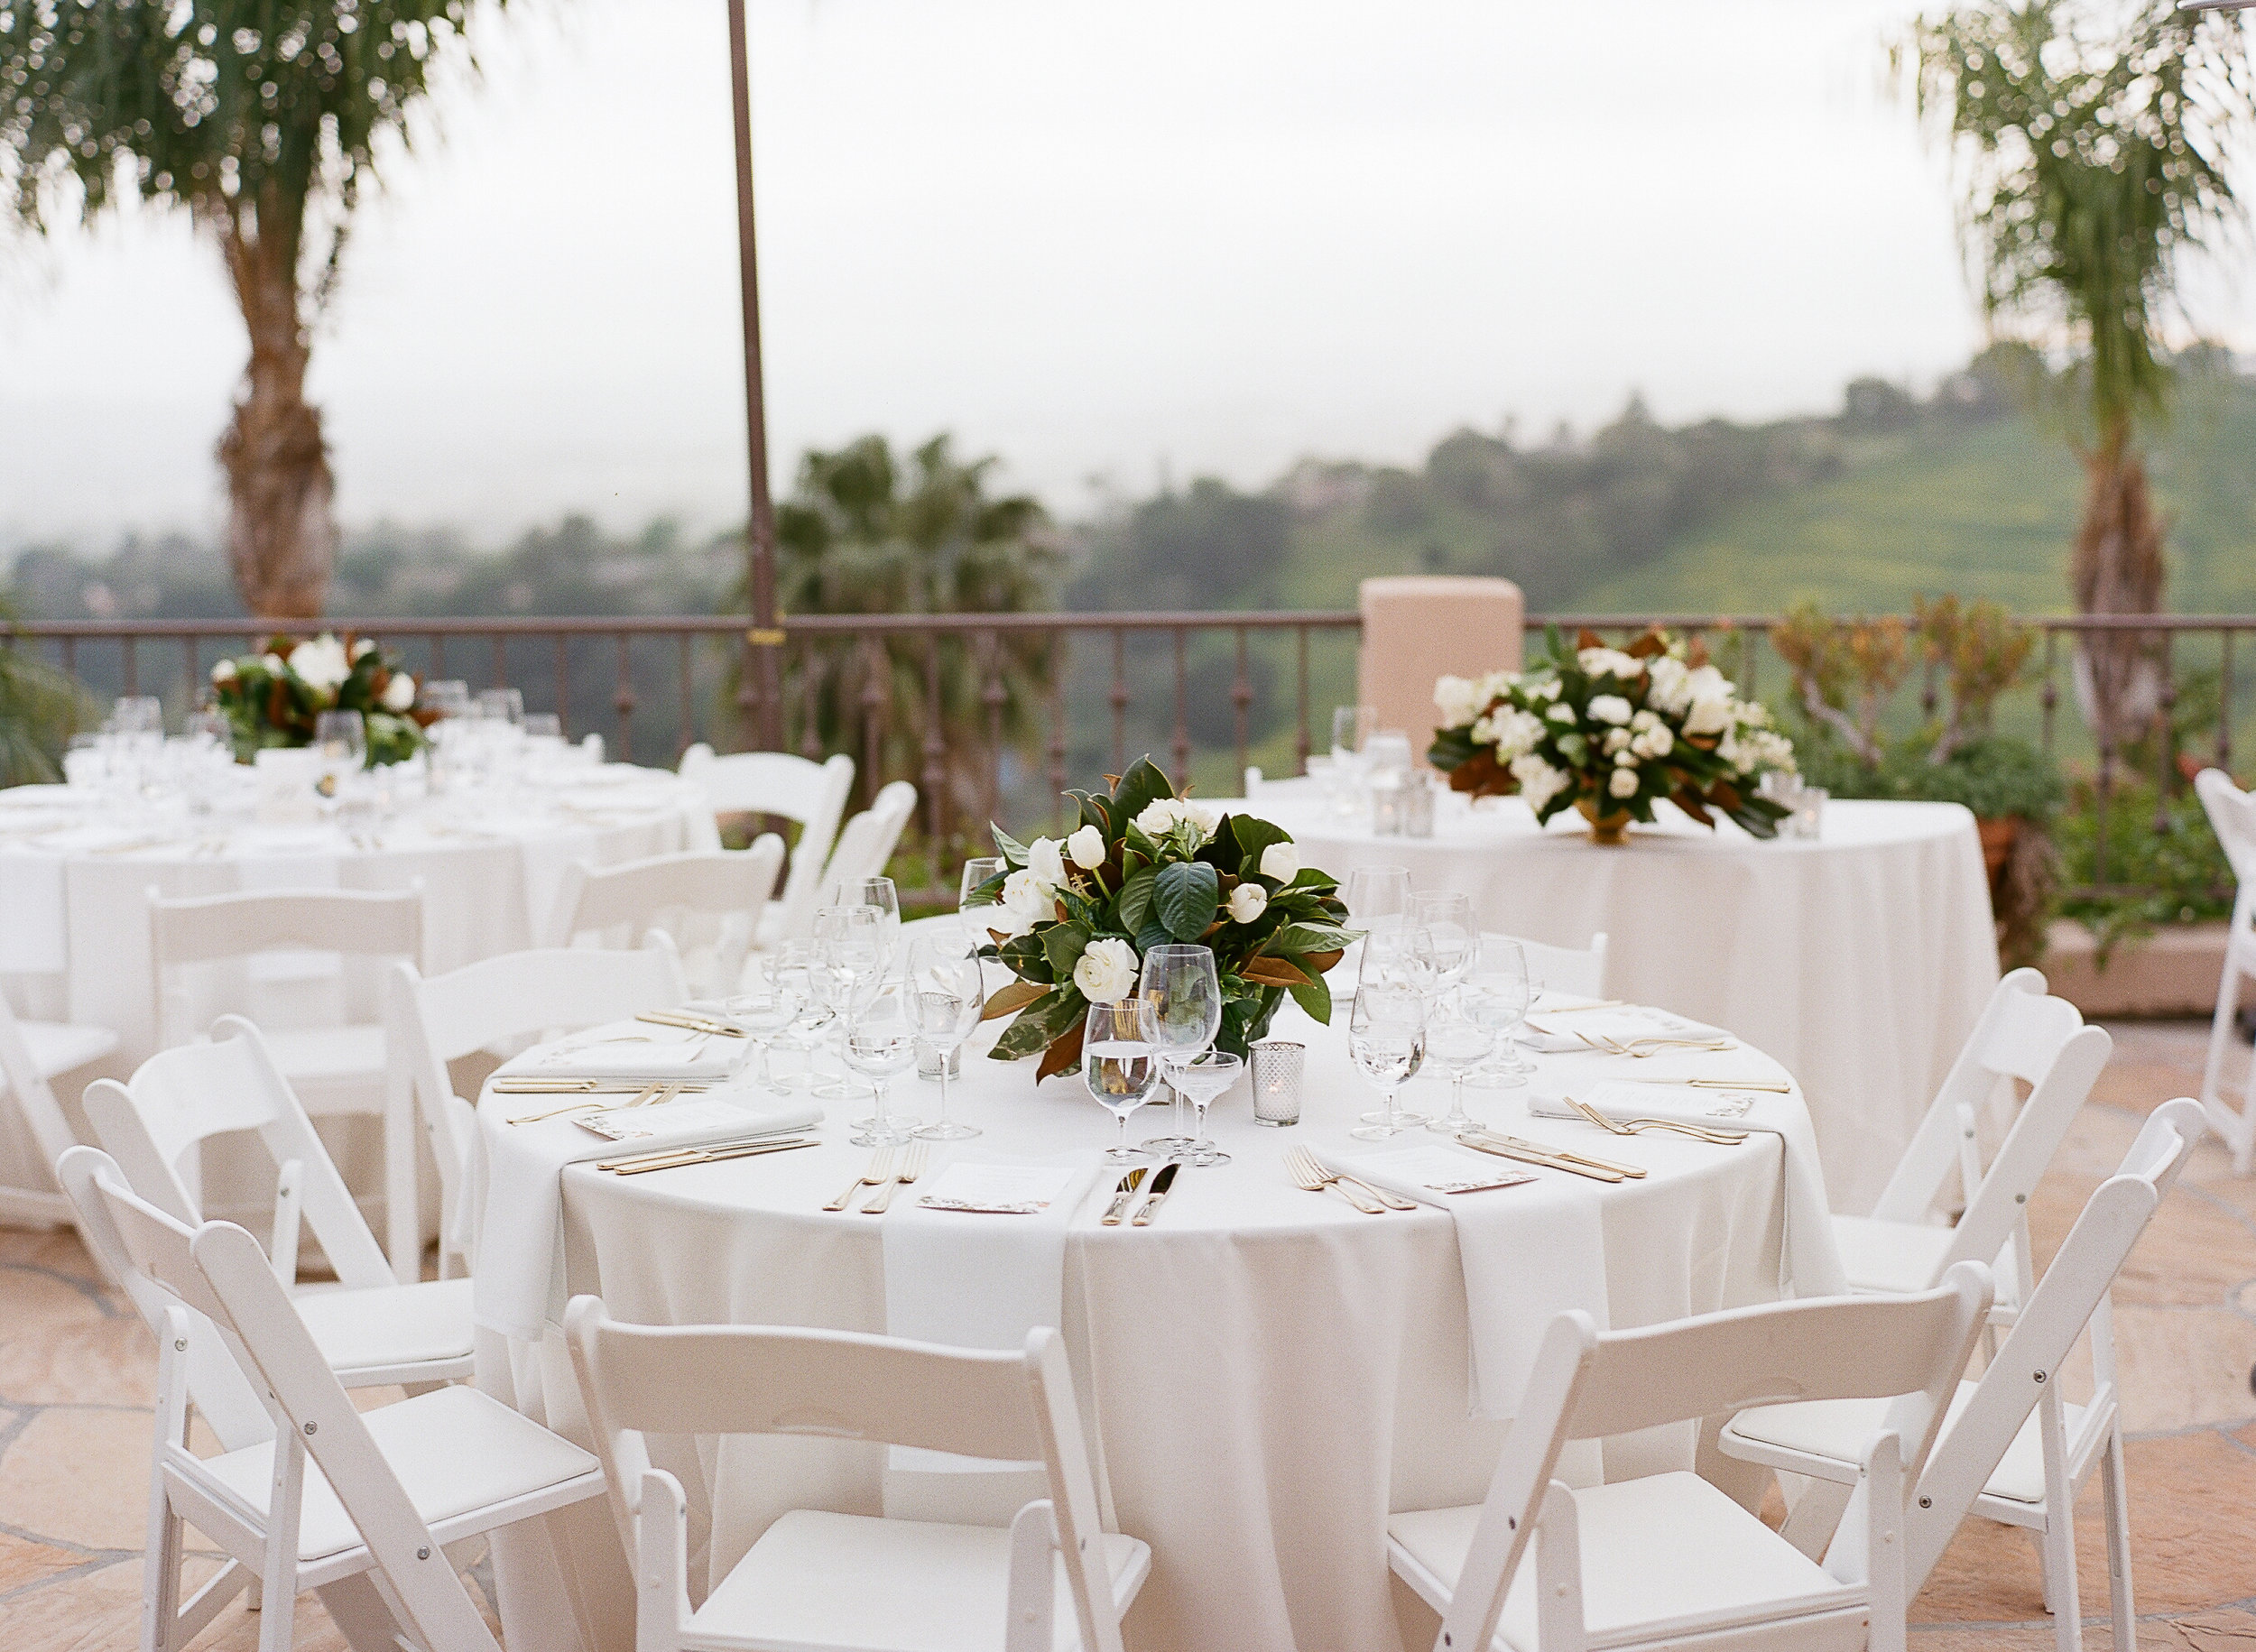 www.santabarbarawedding.com | Villa Verano | Clarissa Koenig Photography | Felici Events | Reception Table